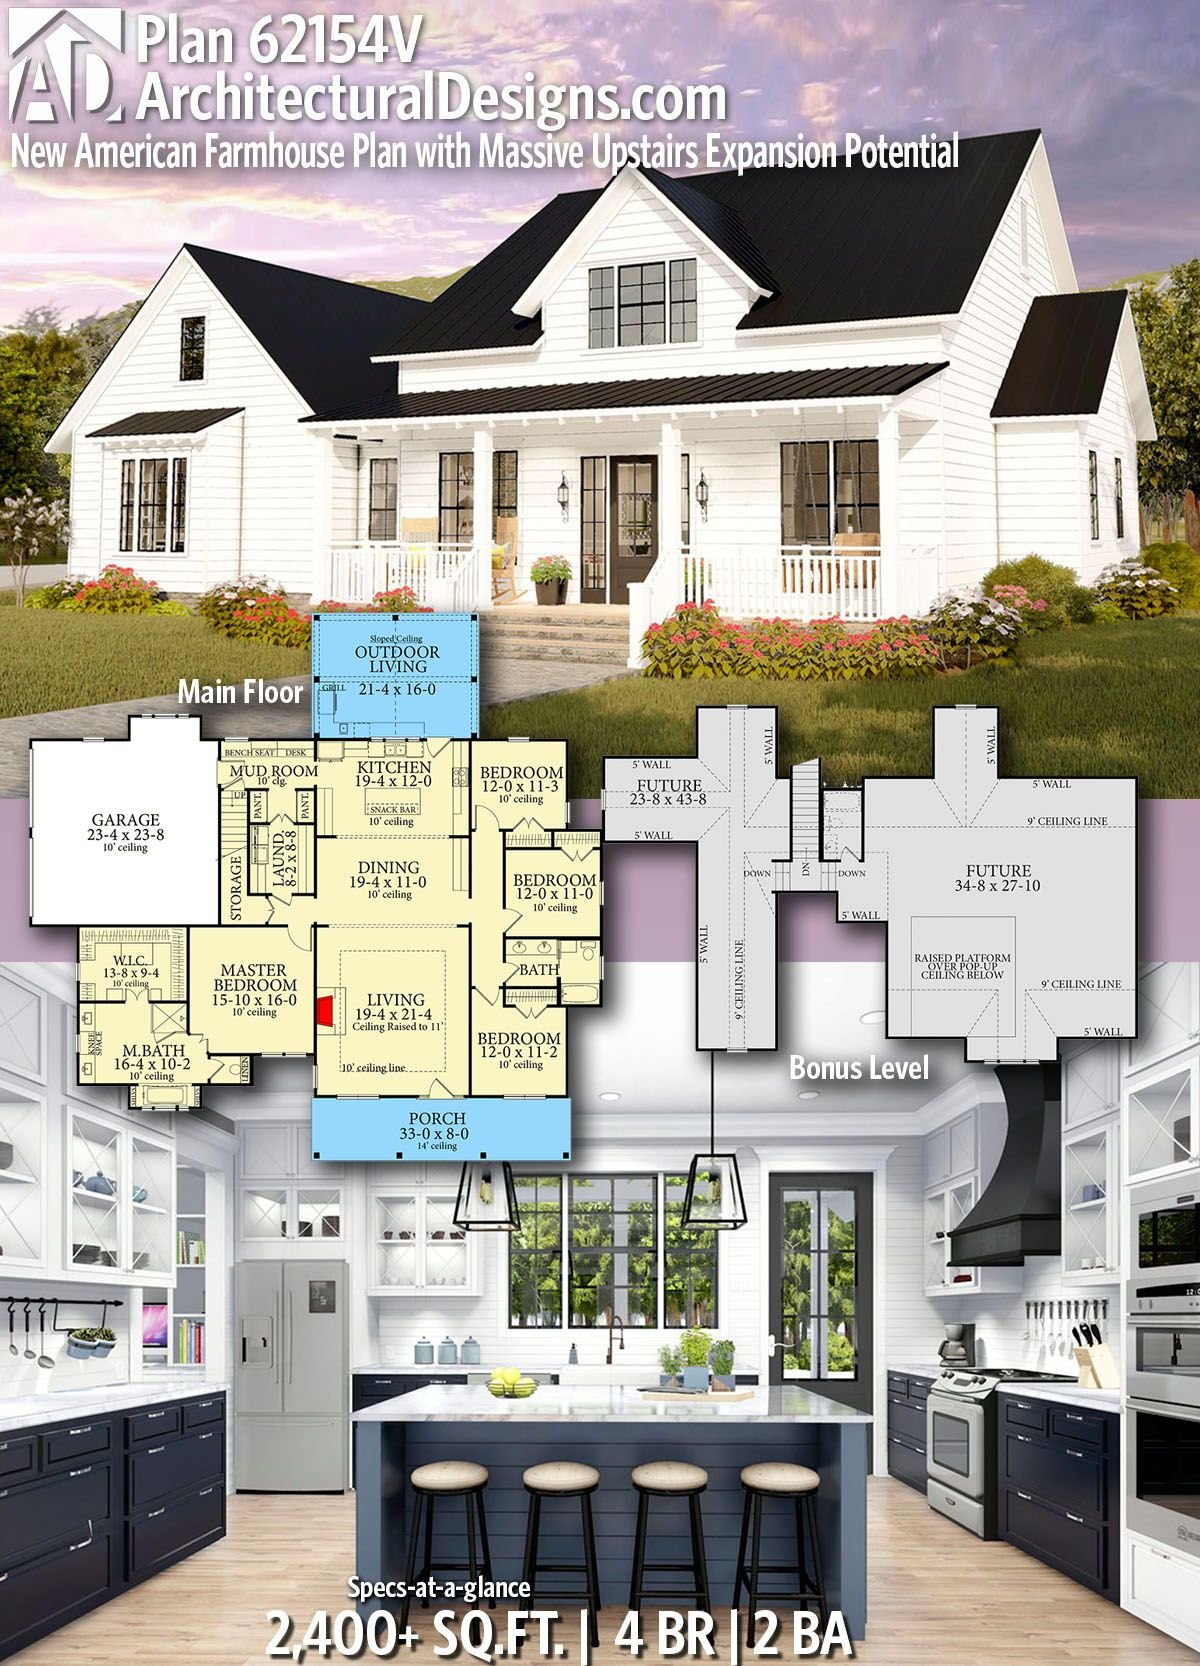 Plan 62154v New American Farmhouse Plan With Massive Upstairs Expansion Potential Modern Farmhouse Plans Farmhouse Plans Dream House Plans